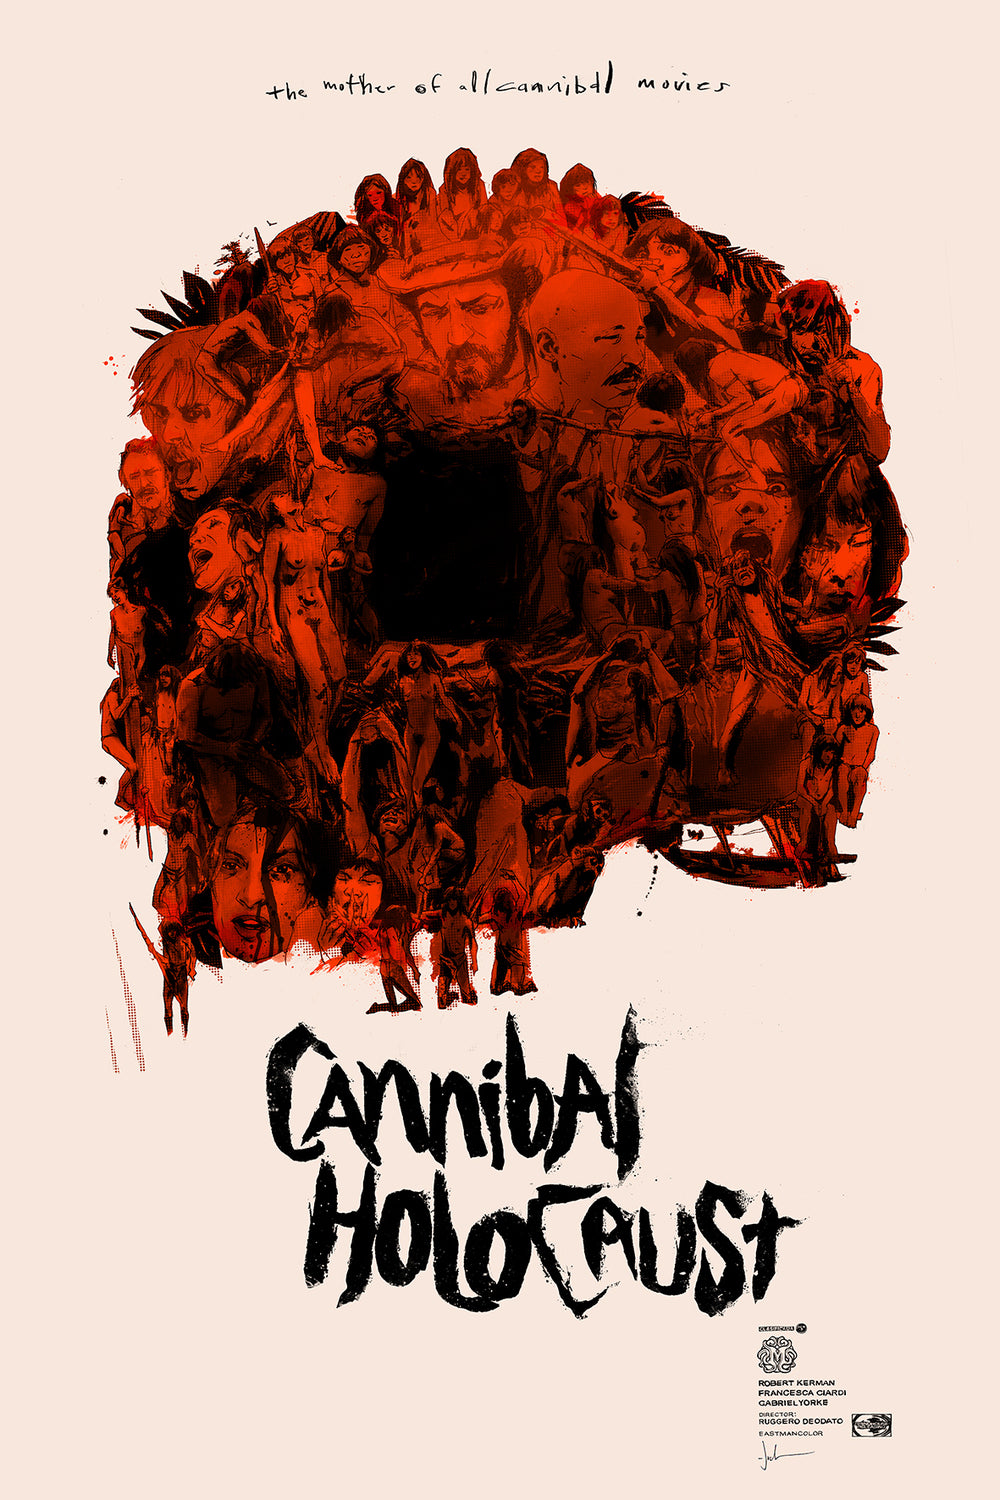 CANNIBAL HOLOCAUST (regular) by Jock